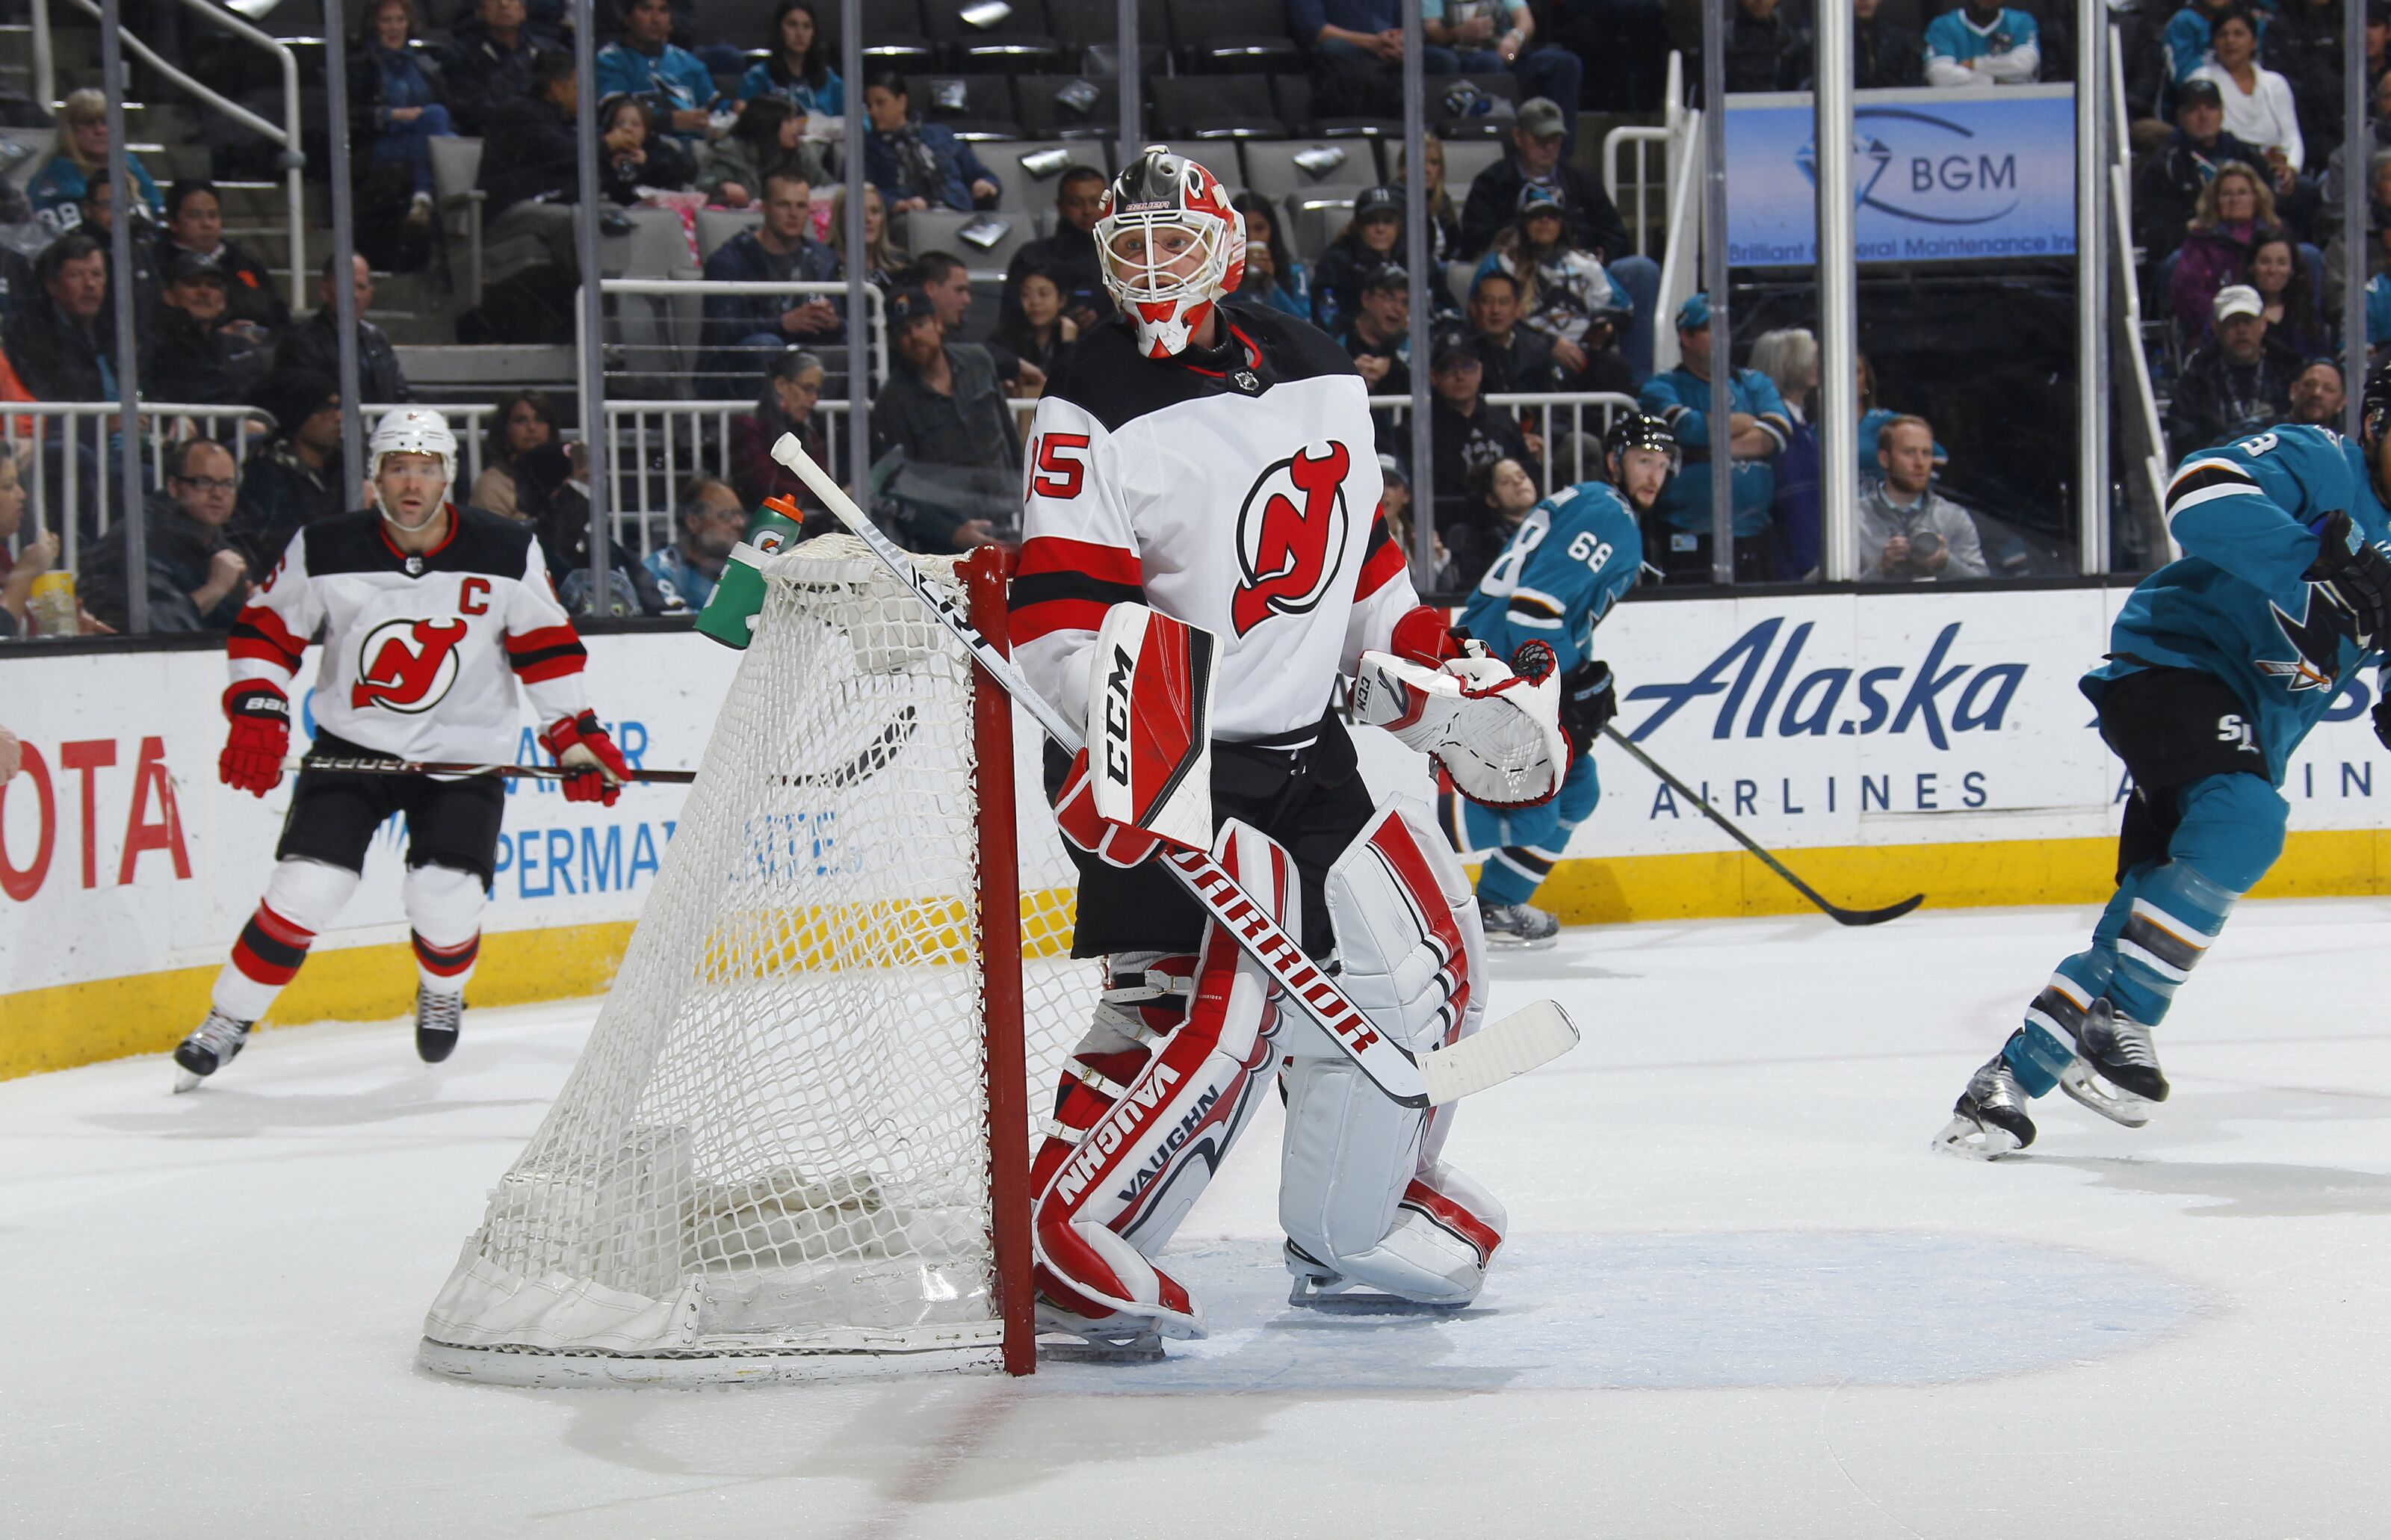 New Jersey Devils: Is Trading Cory Schneider Possible?